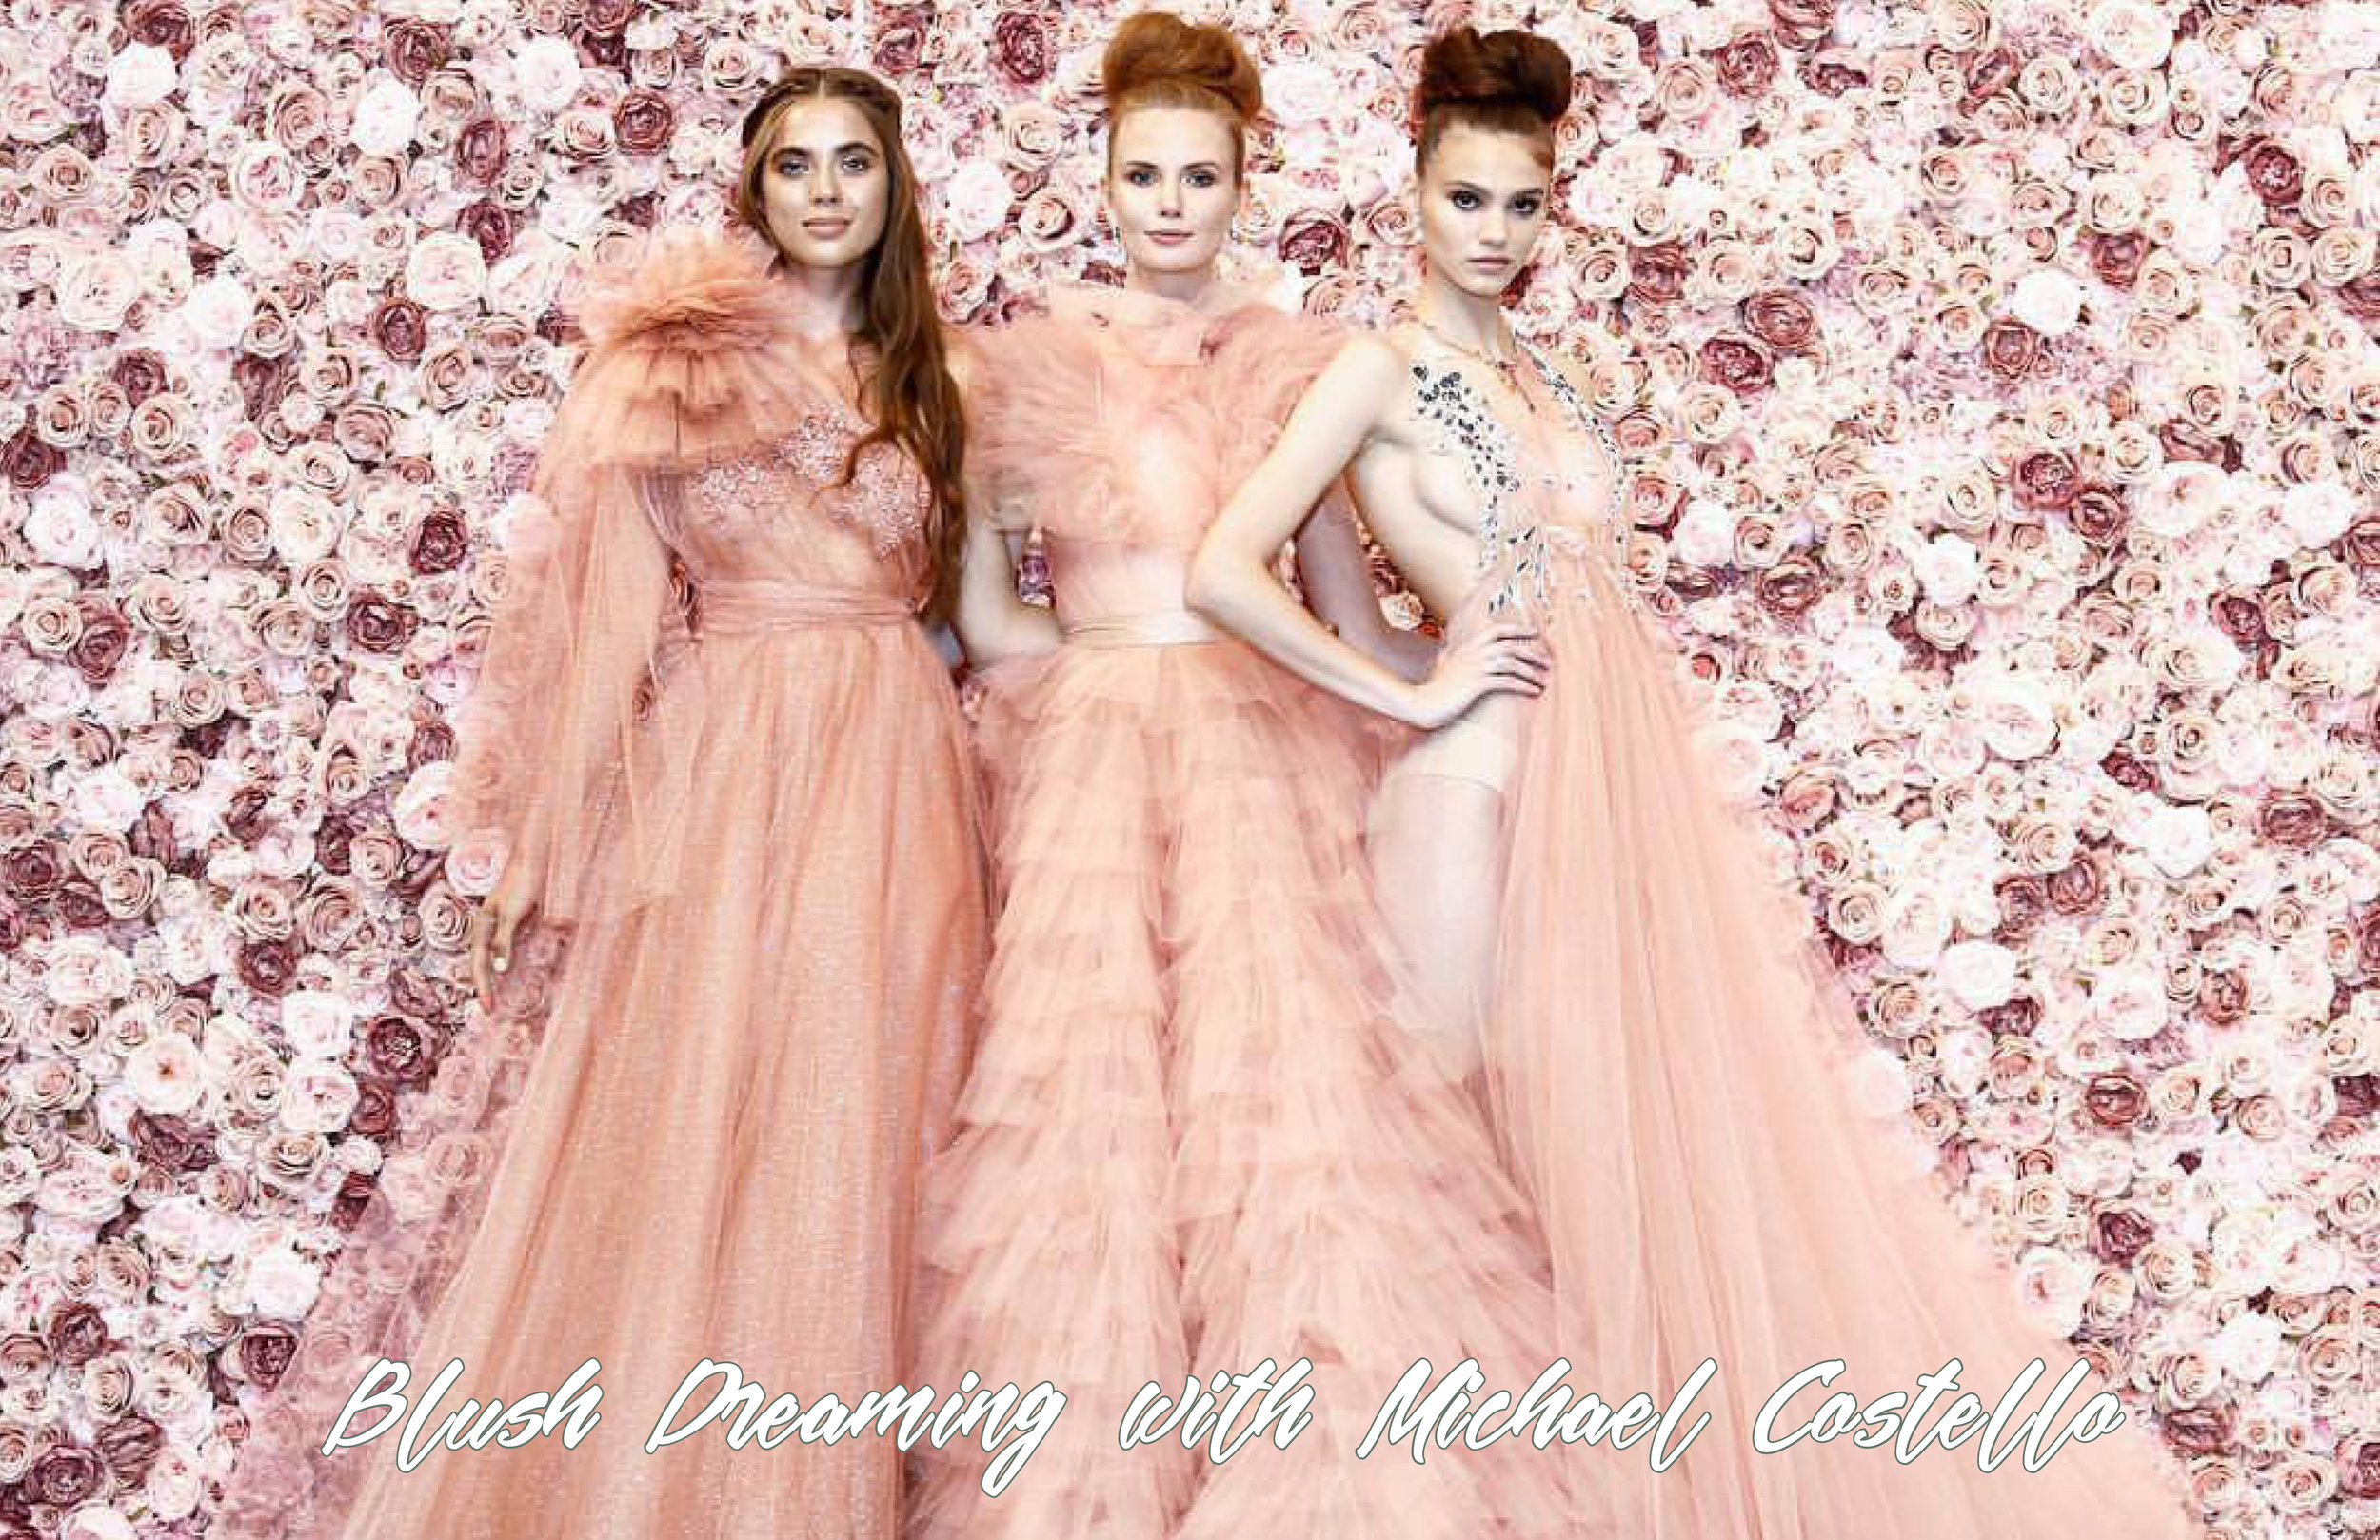 AM SEP BLUSH DREAMING WITH MICHAEL COSTELLO-1.jpg